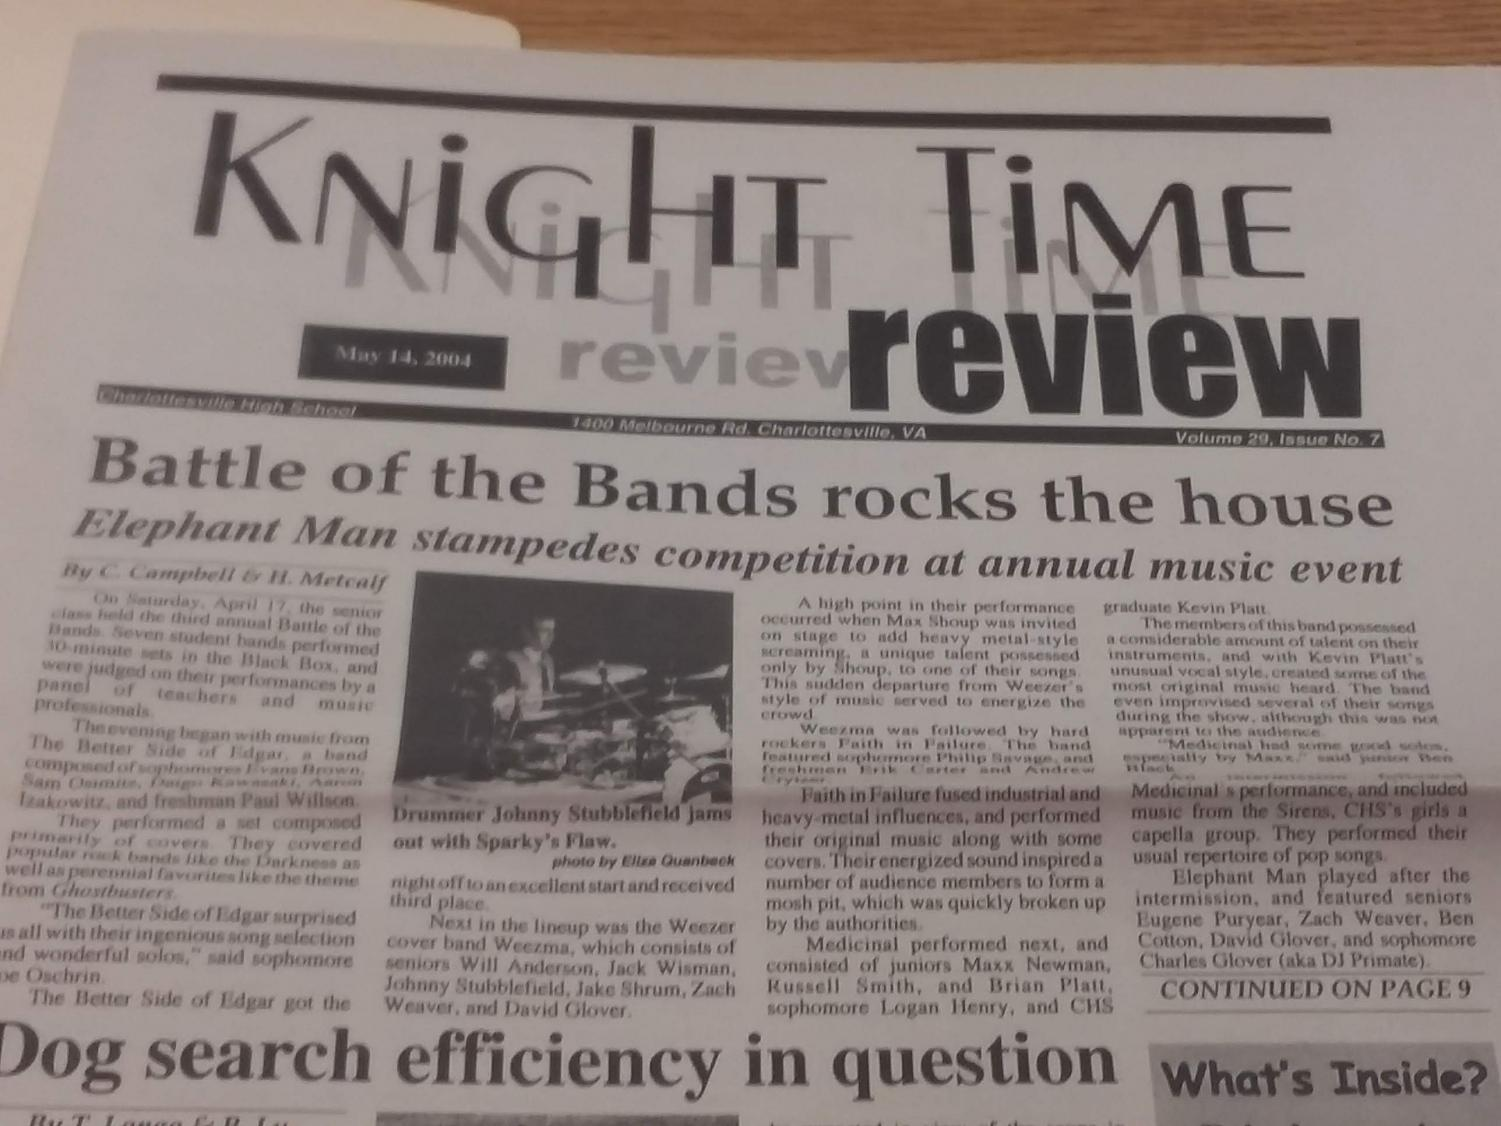 The Battle of the Bands was regularly a front page feature on KTR publications of the past.